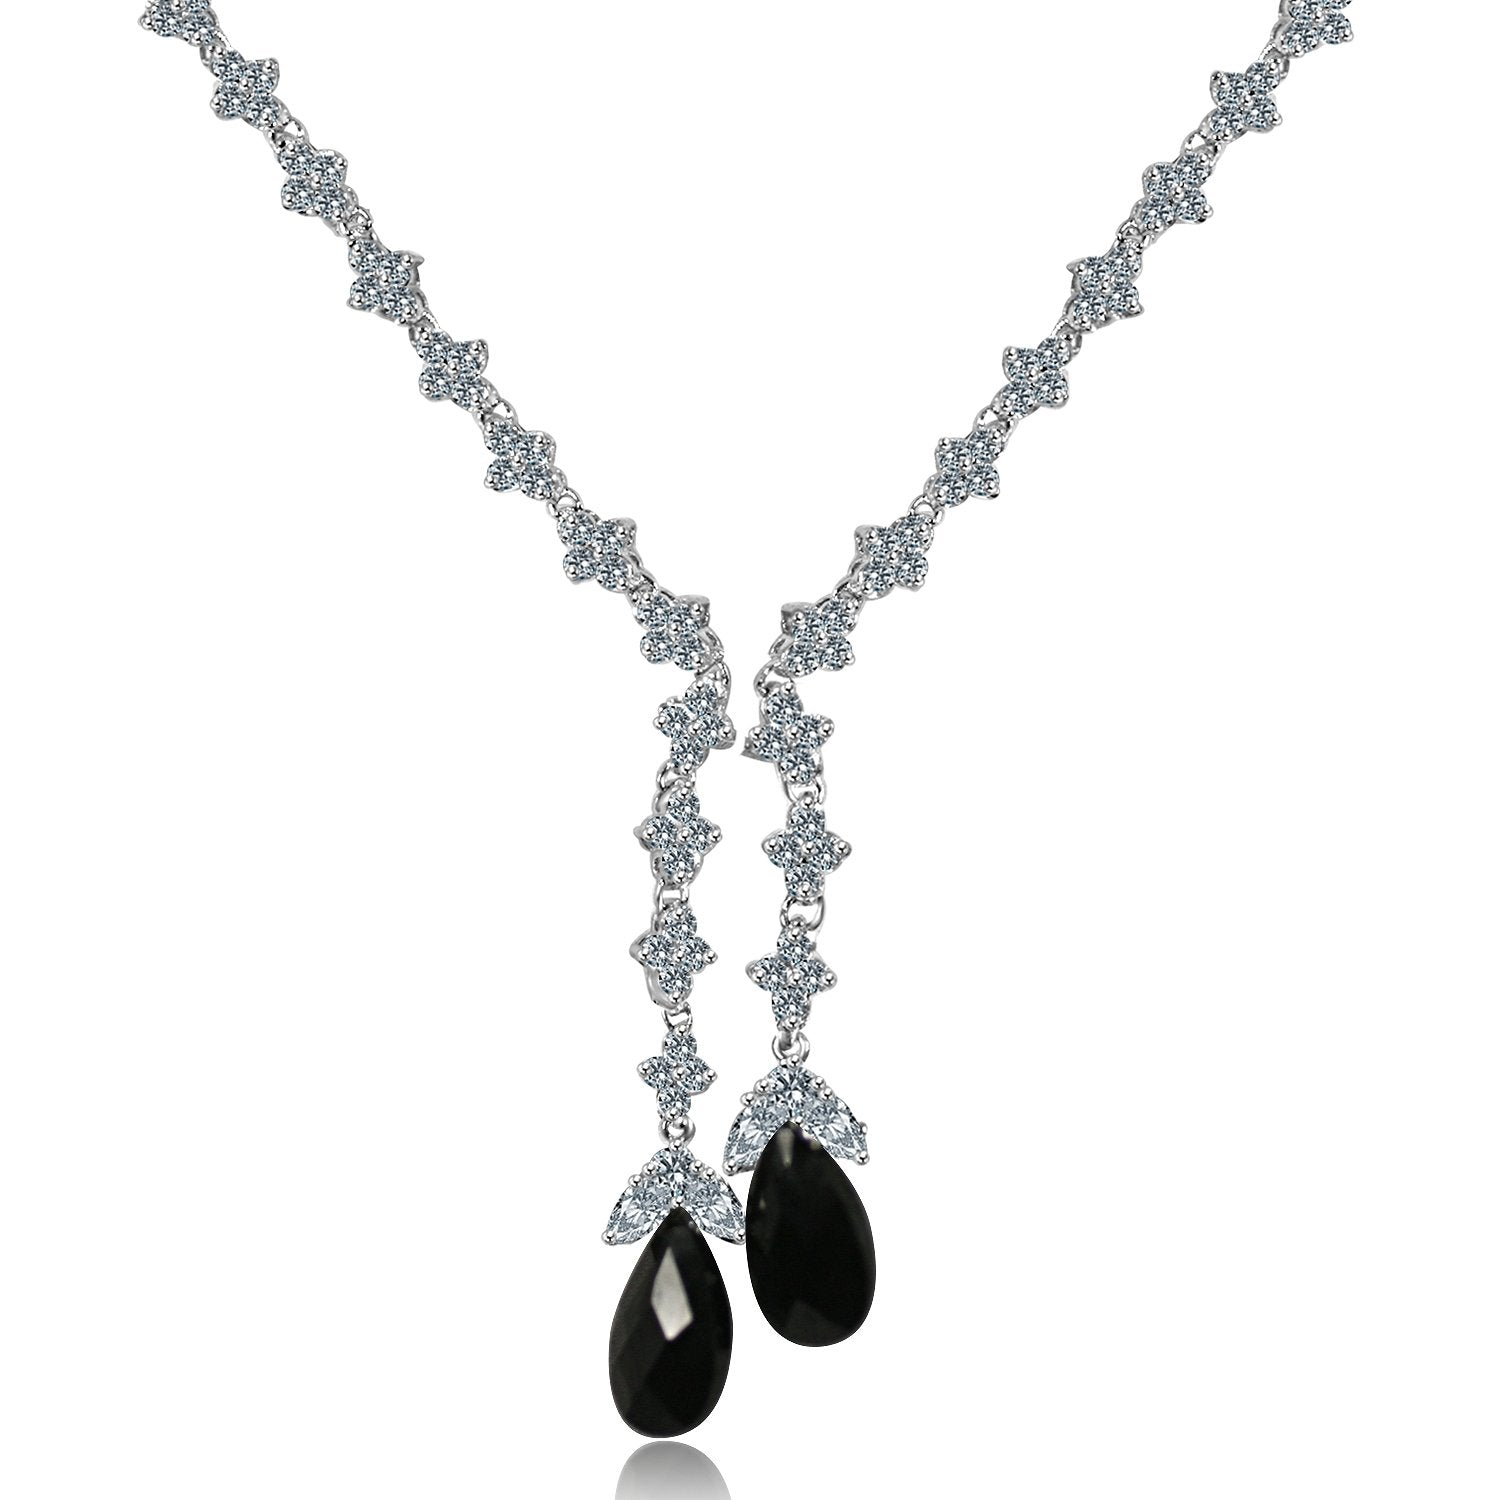 ZIRCONITE CUBIC ZIRCONIA TASSEL W/LARGE CHECK-A-BOARD CUT PEAR BRIOLETTES NECKLACE. 628N80024